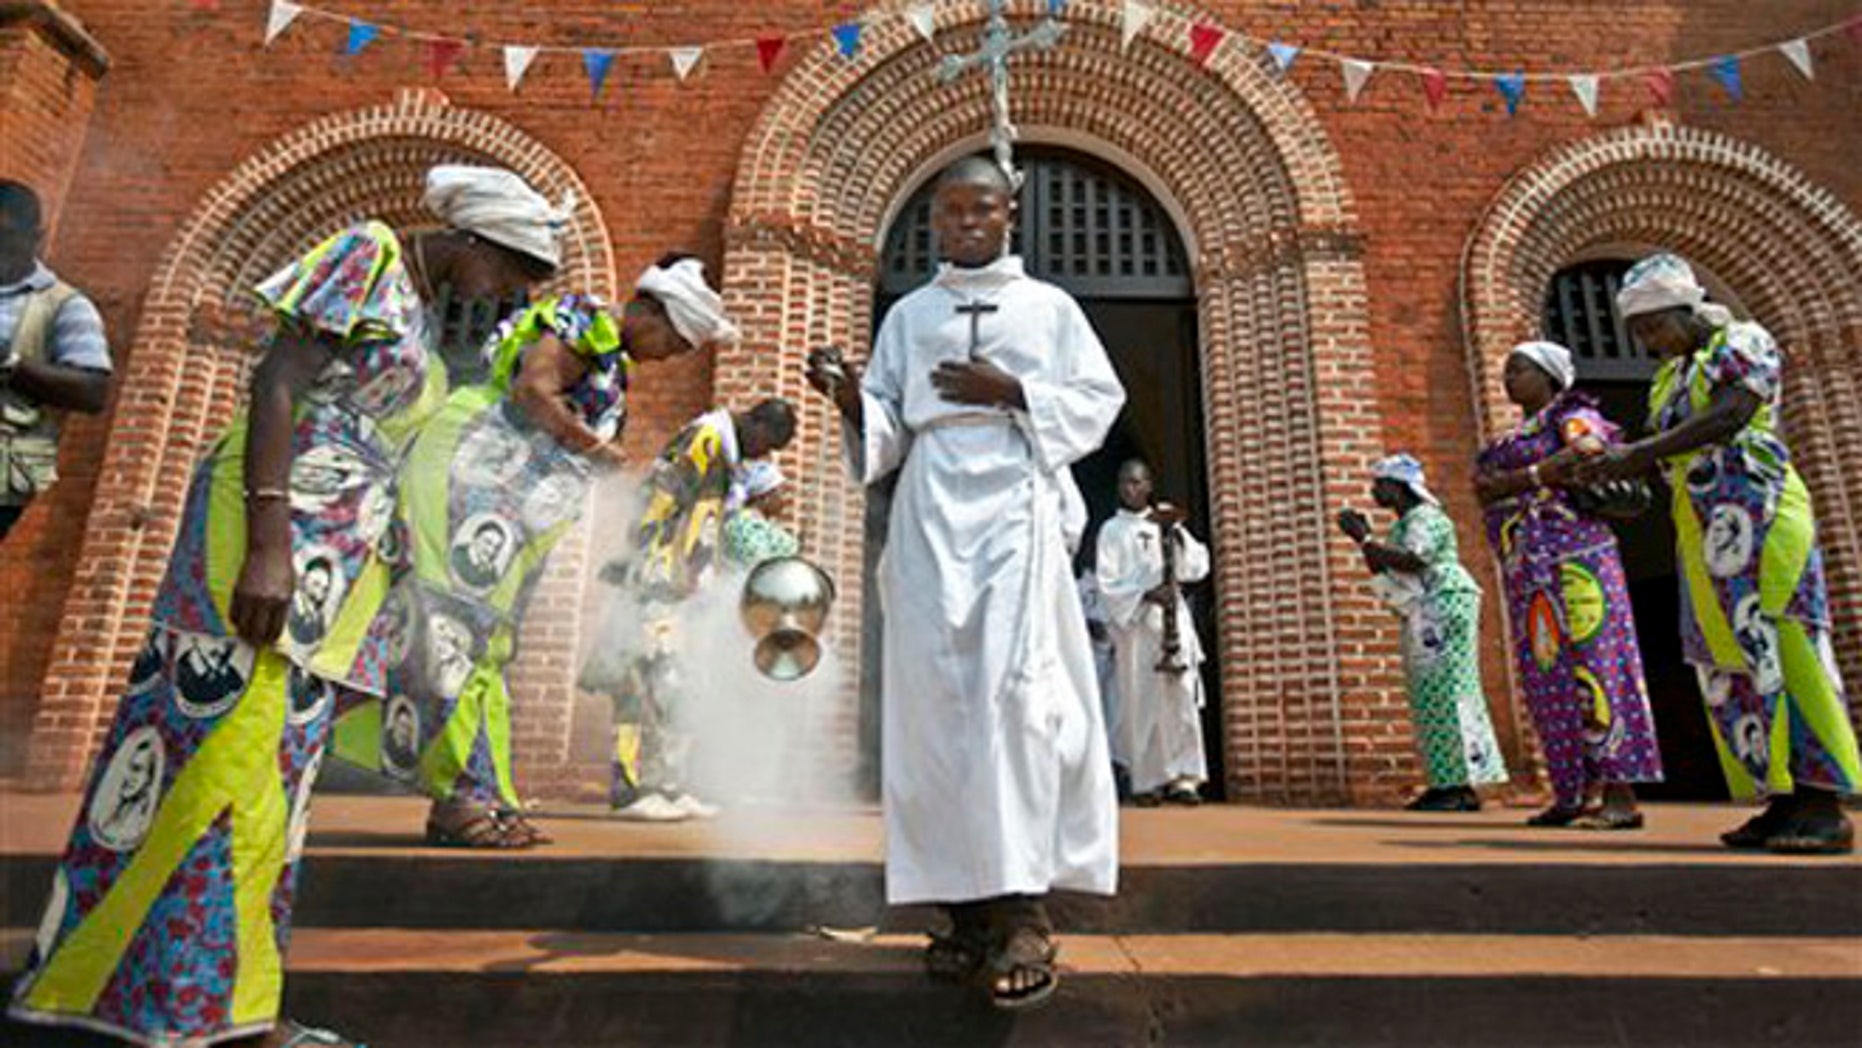 FILE - In this Sunday, Jan. 6, 2013 file photo, the thurifer swings the thurible of incense as he leads the procession out of the Notre Dame Cathedral of the Immaculate Conception at the end of the morning mass in Bangui, Central African Republic. Pope Francis follows his predecessors next week Nov. 25-30, 2015 to visit Africa whose growing numbers of Catholics are seen as a bulwark for a church seeking to broaden its appeal amid secularism, competing Christian faiths and violent extremism, in a trip that will take him to Kenya, Uganda and the Central African Republic. (AP Photo/Ben Curtis, File)